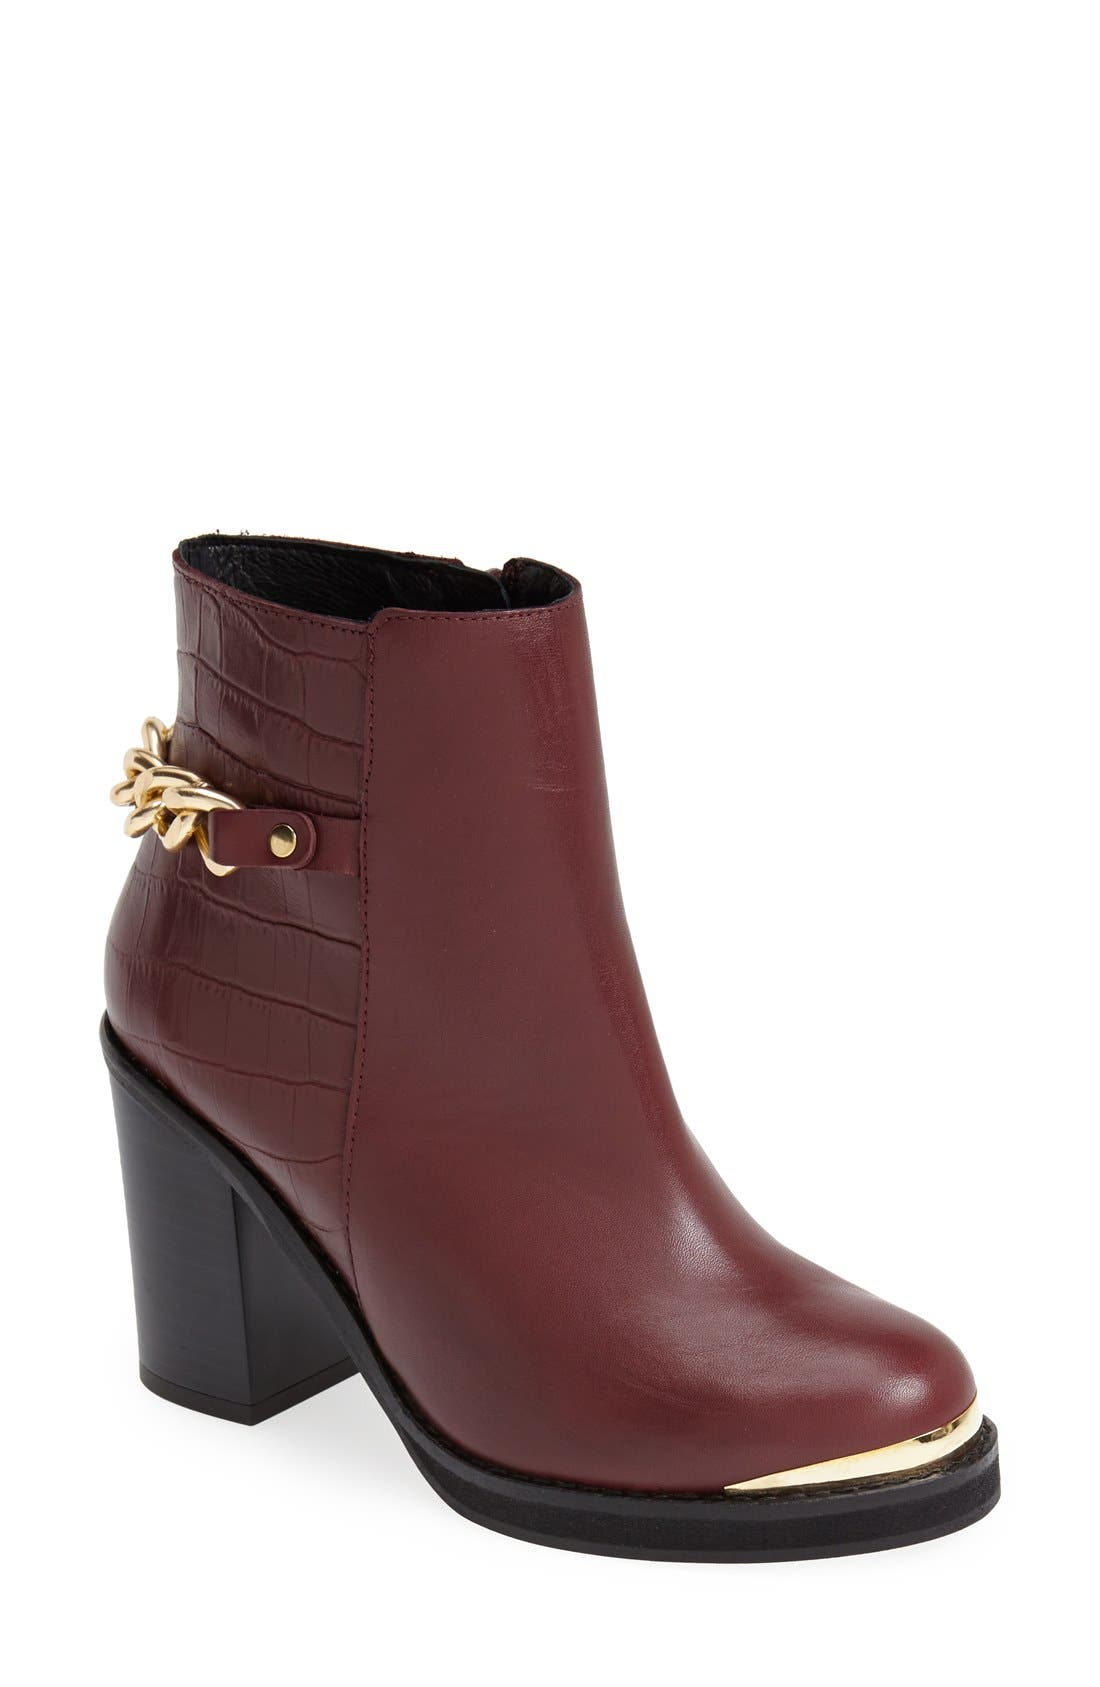 Alternate Image 1 Selected - Topshop 'Merit' Chain Ankle Boot (Women)